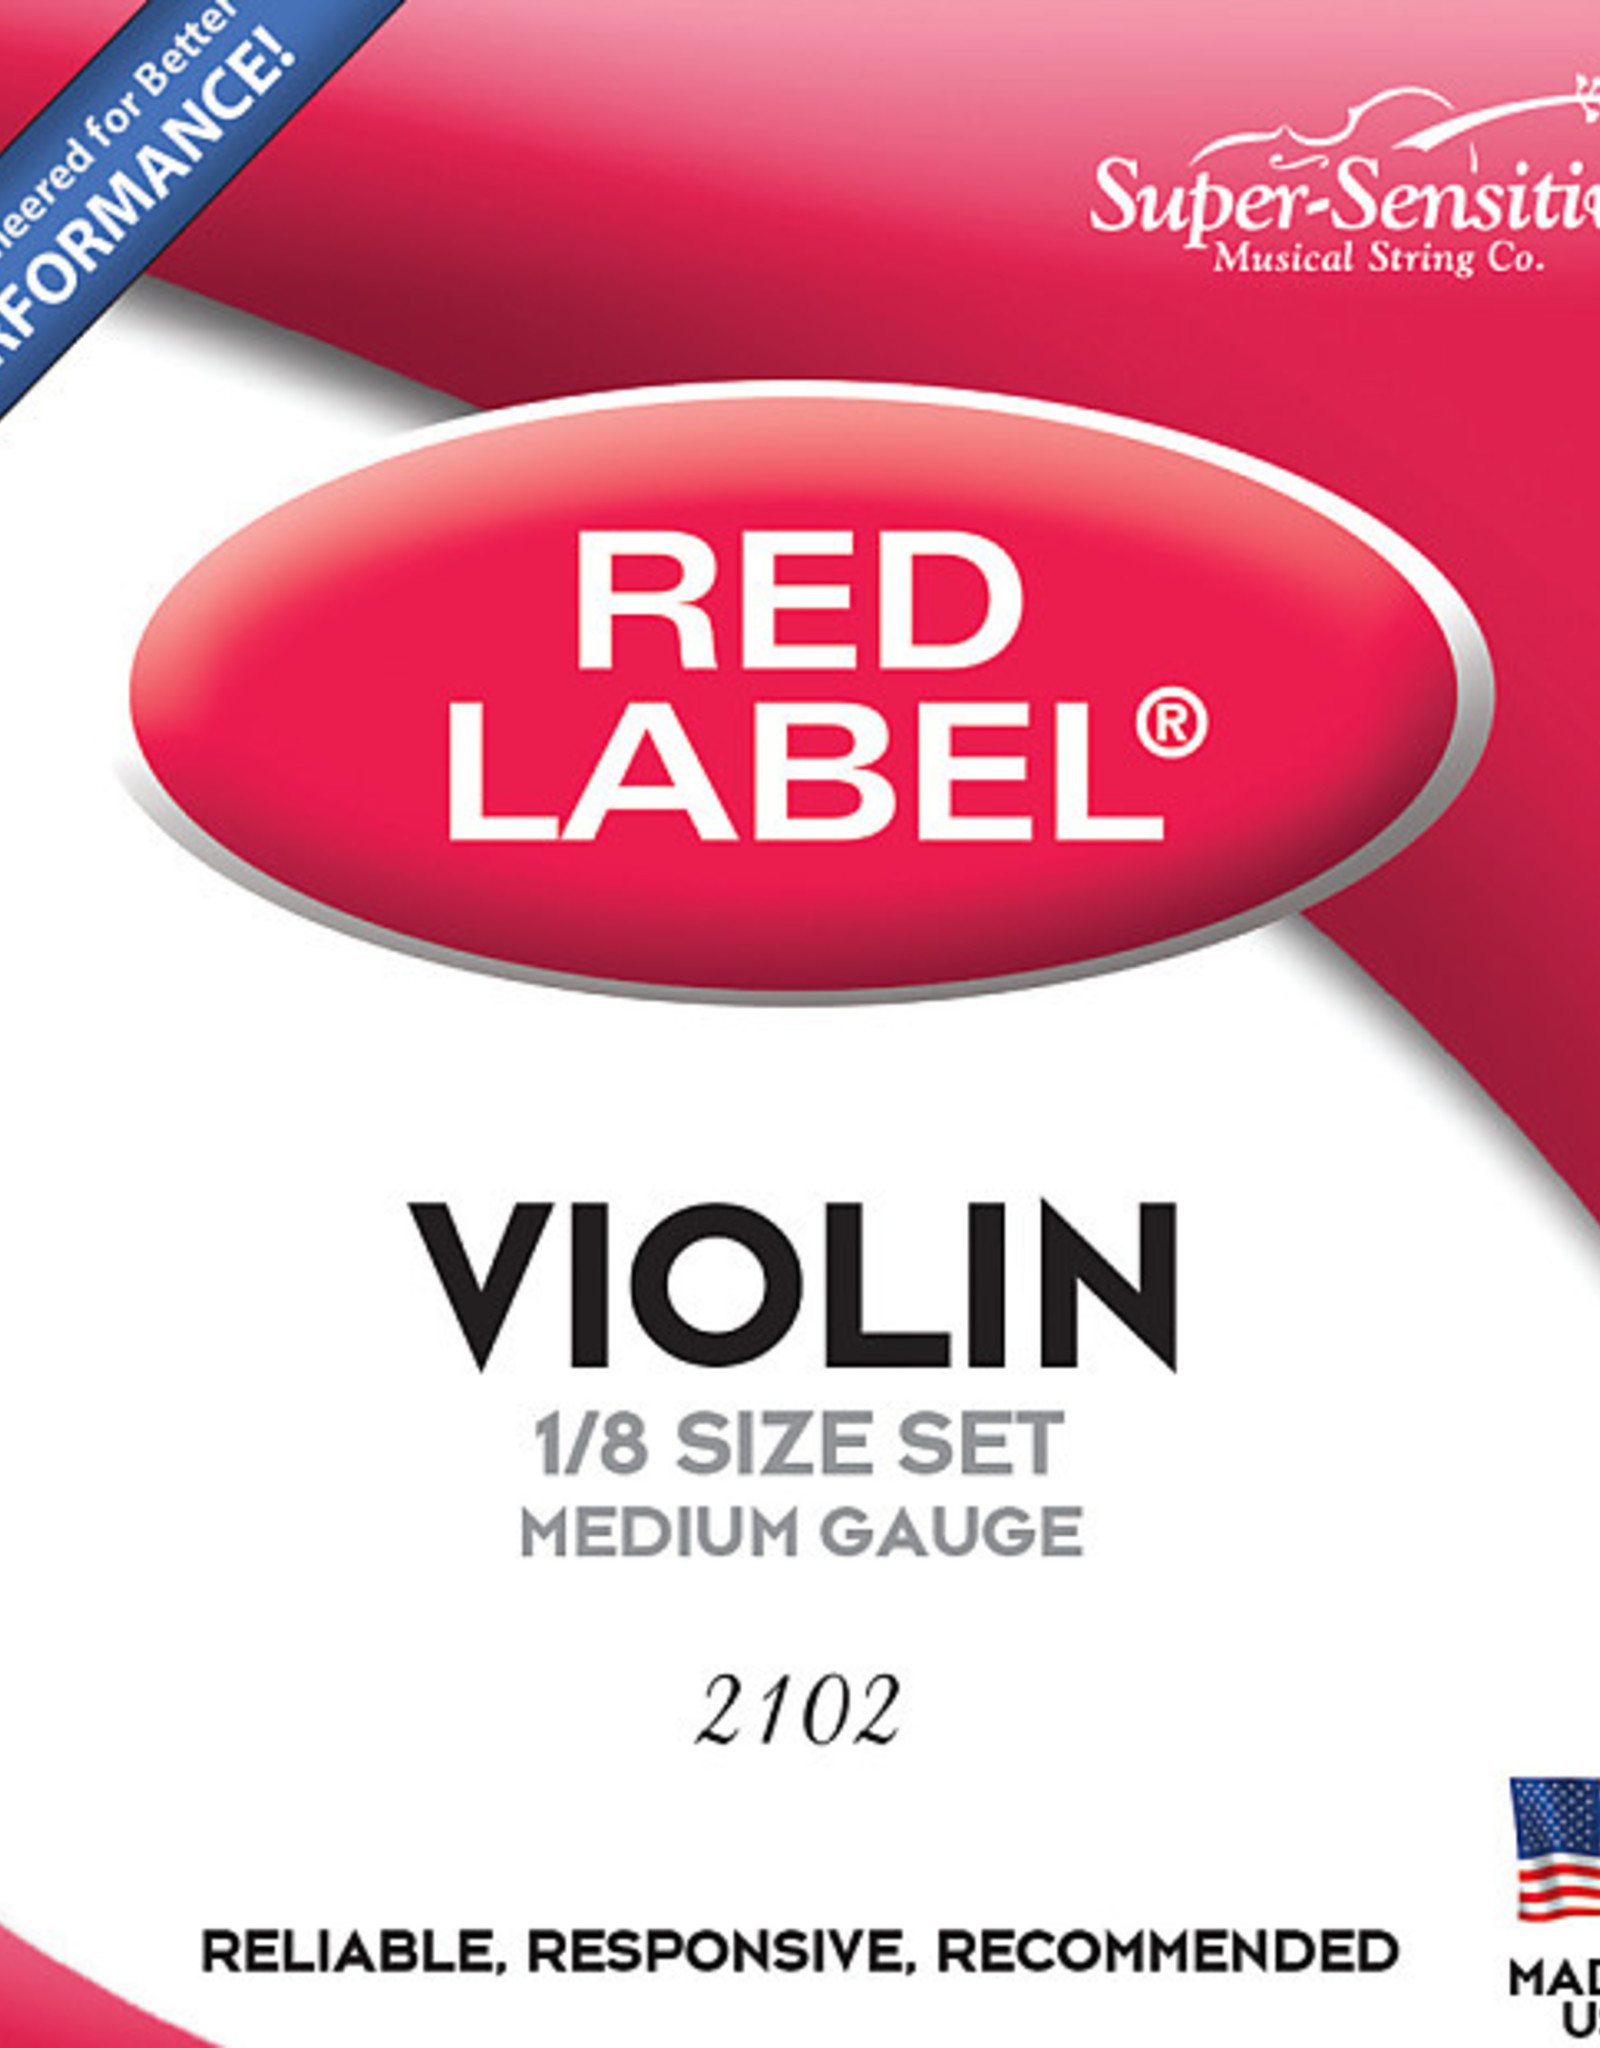 Supersensitive VIOLIN SUPER-SENSITIVE RED LABEL 1/2 SET